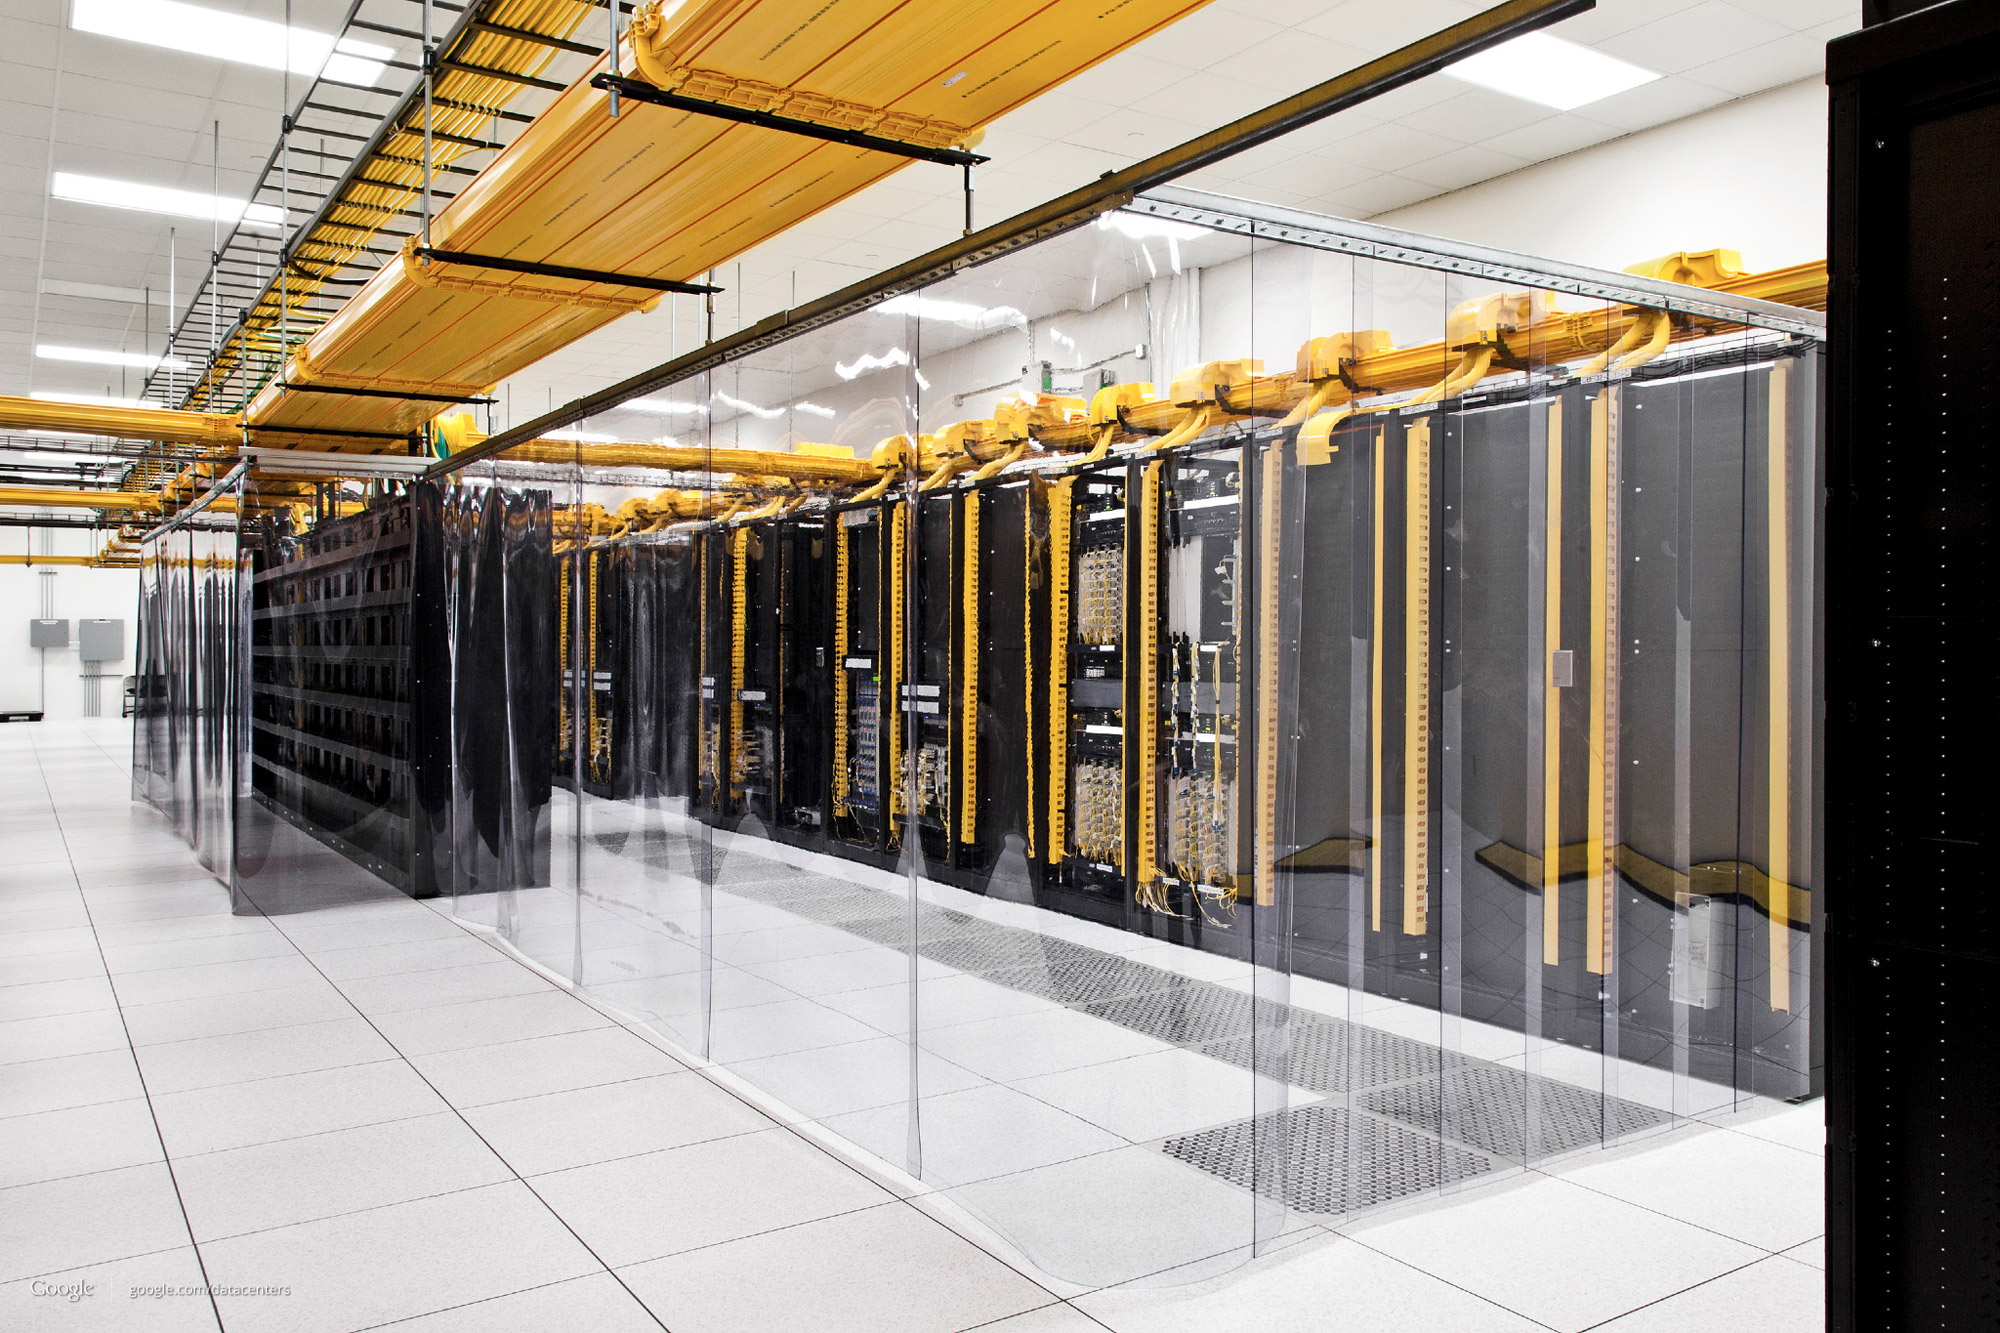 Transparent plastic curtains keep the cool air around servers in a Google data center in Council Bluffs, Iowa.